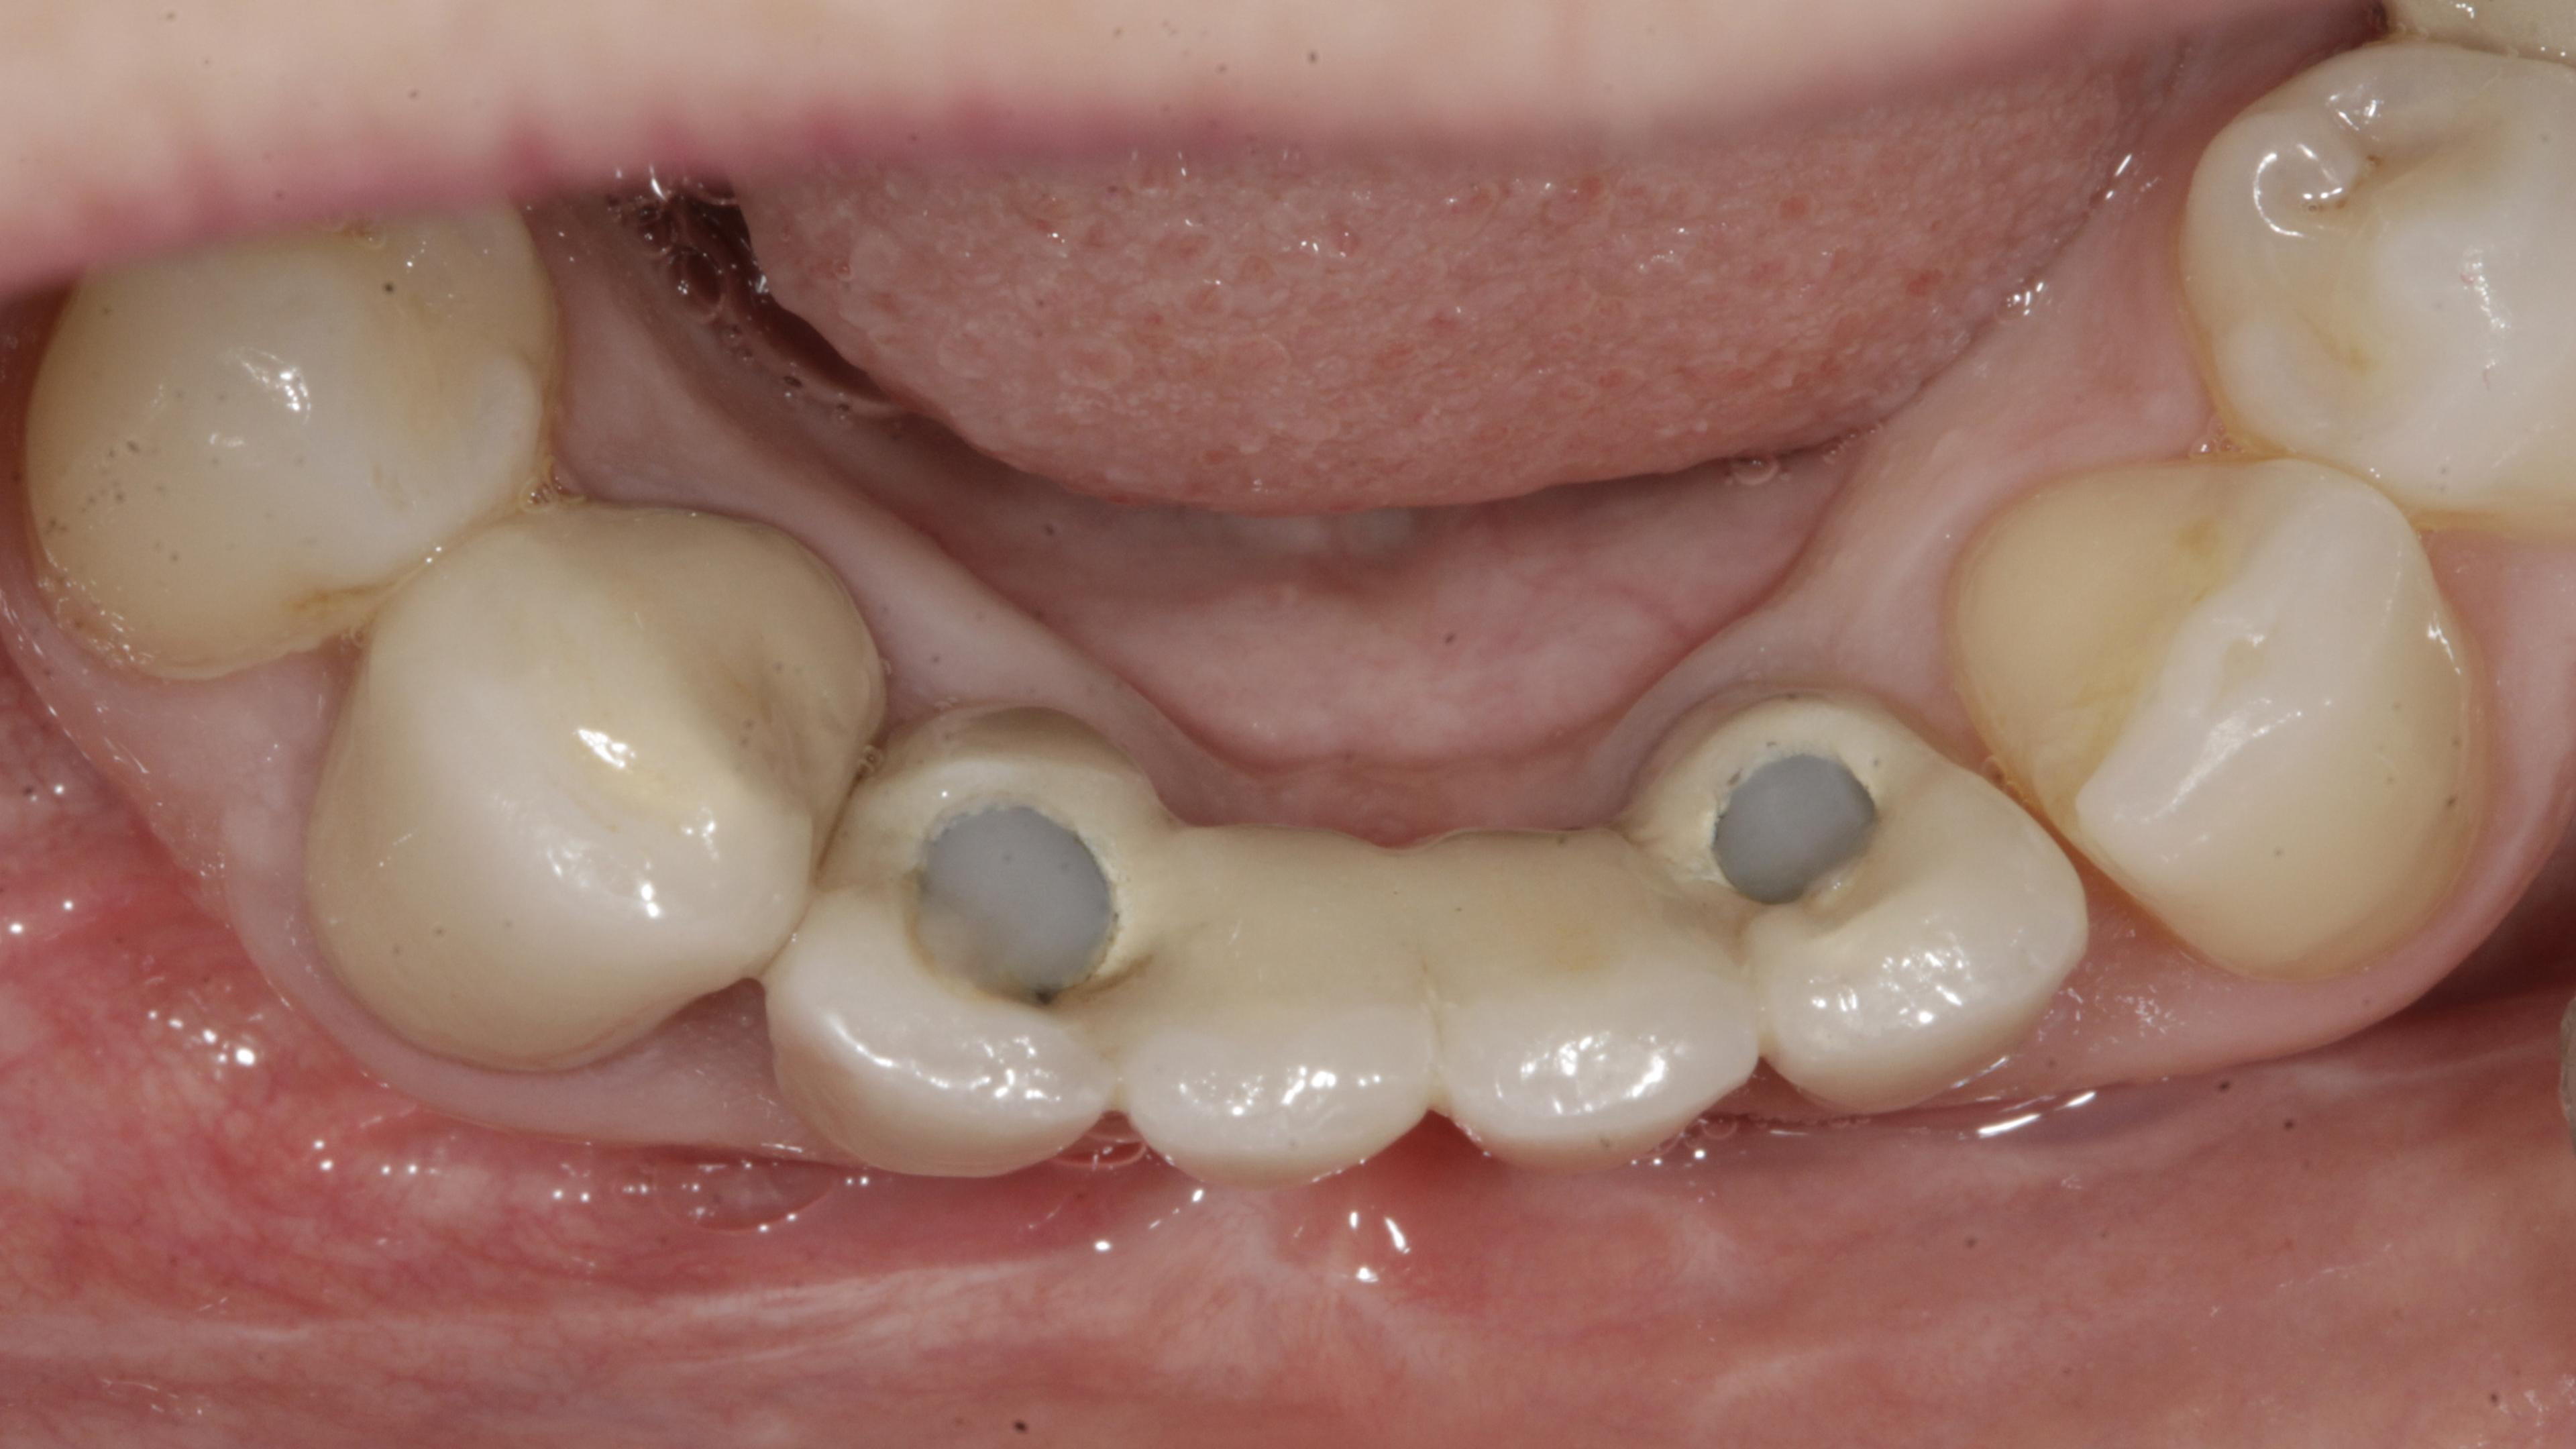 Partial edentulism After treatment - Missing more than one teeth